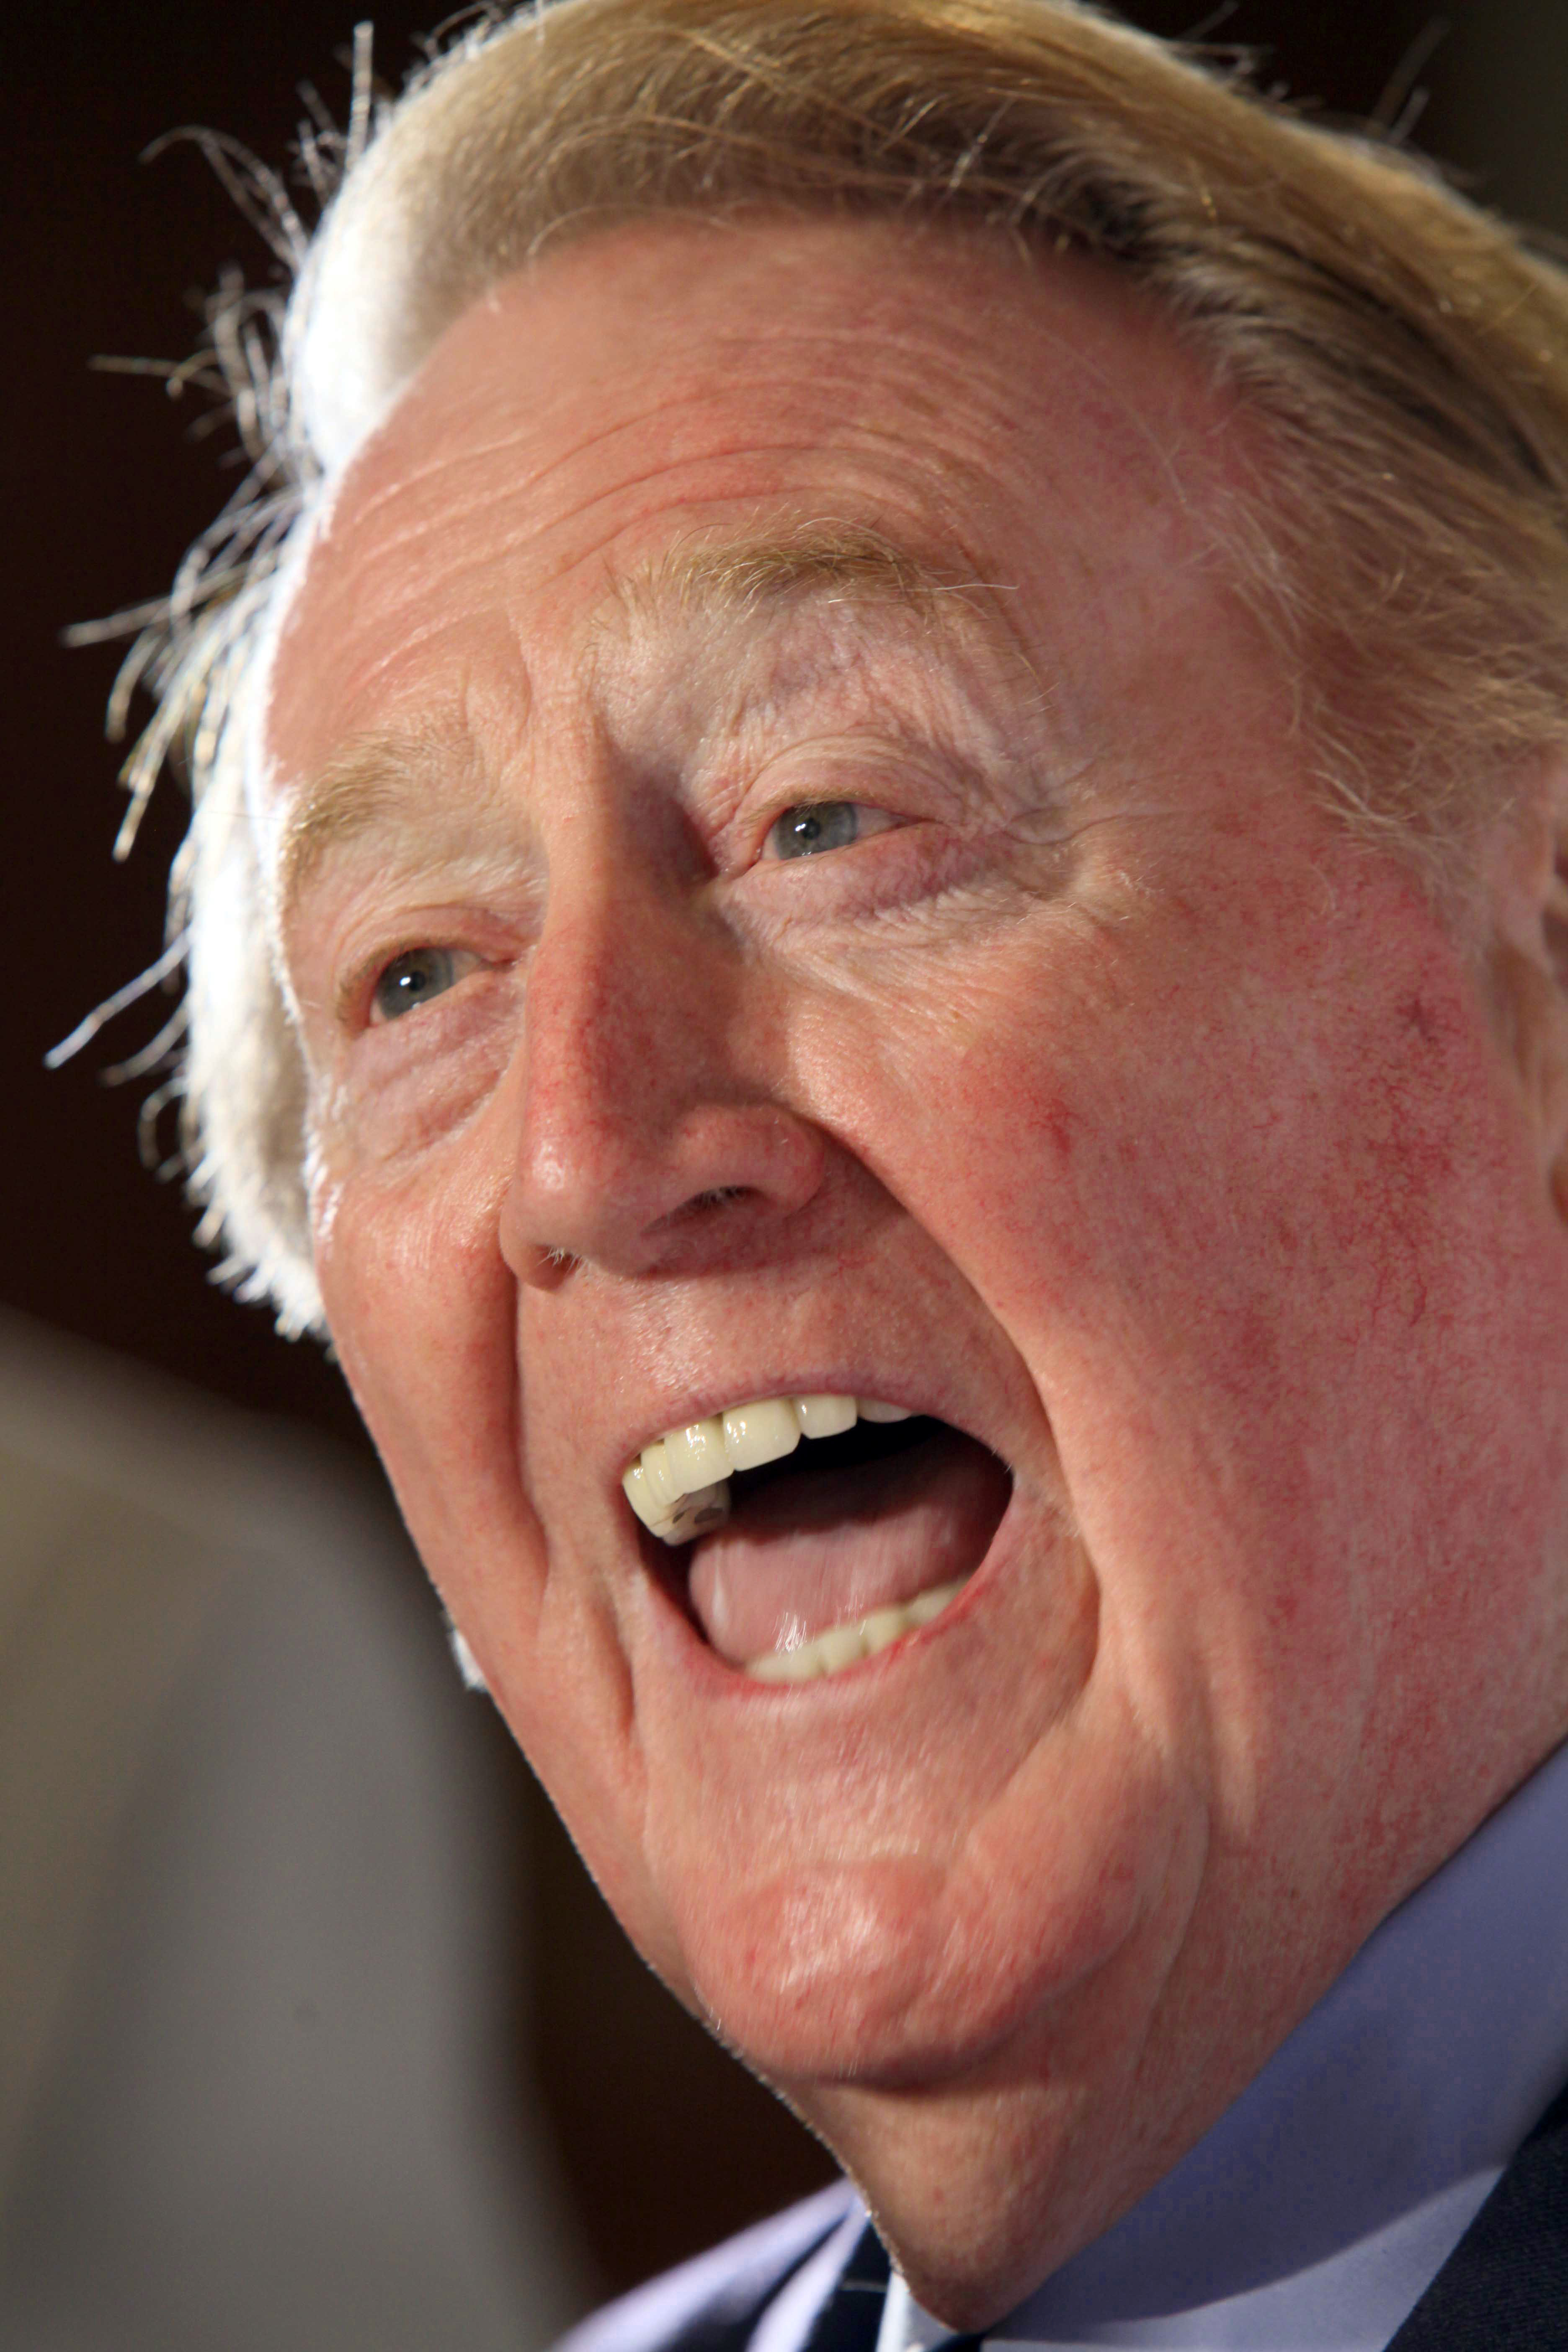 FILE - In this Nov. 10, 2009, file photo, Vin Scully, the play-by-play announcer for the Los Angeles Dodgers, speaks to members of the media during the Hollywood Radio and Television Society's Newsmaker Luncheon in Beverly Hills, Calif. Scully will not be